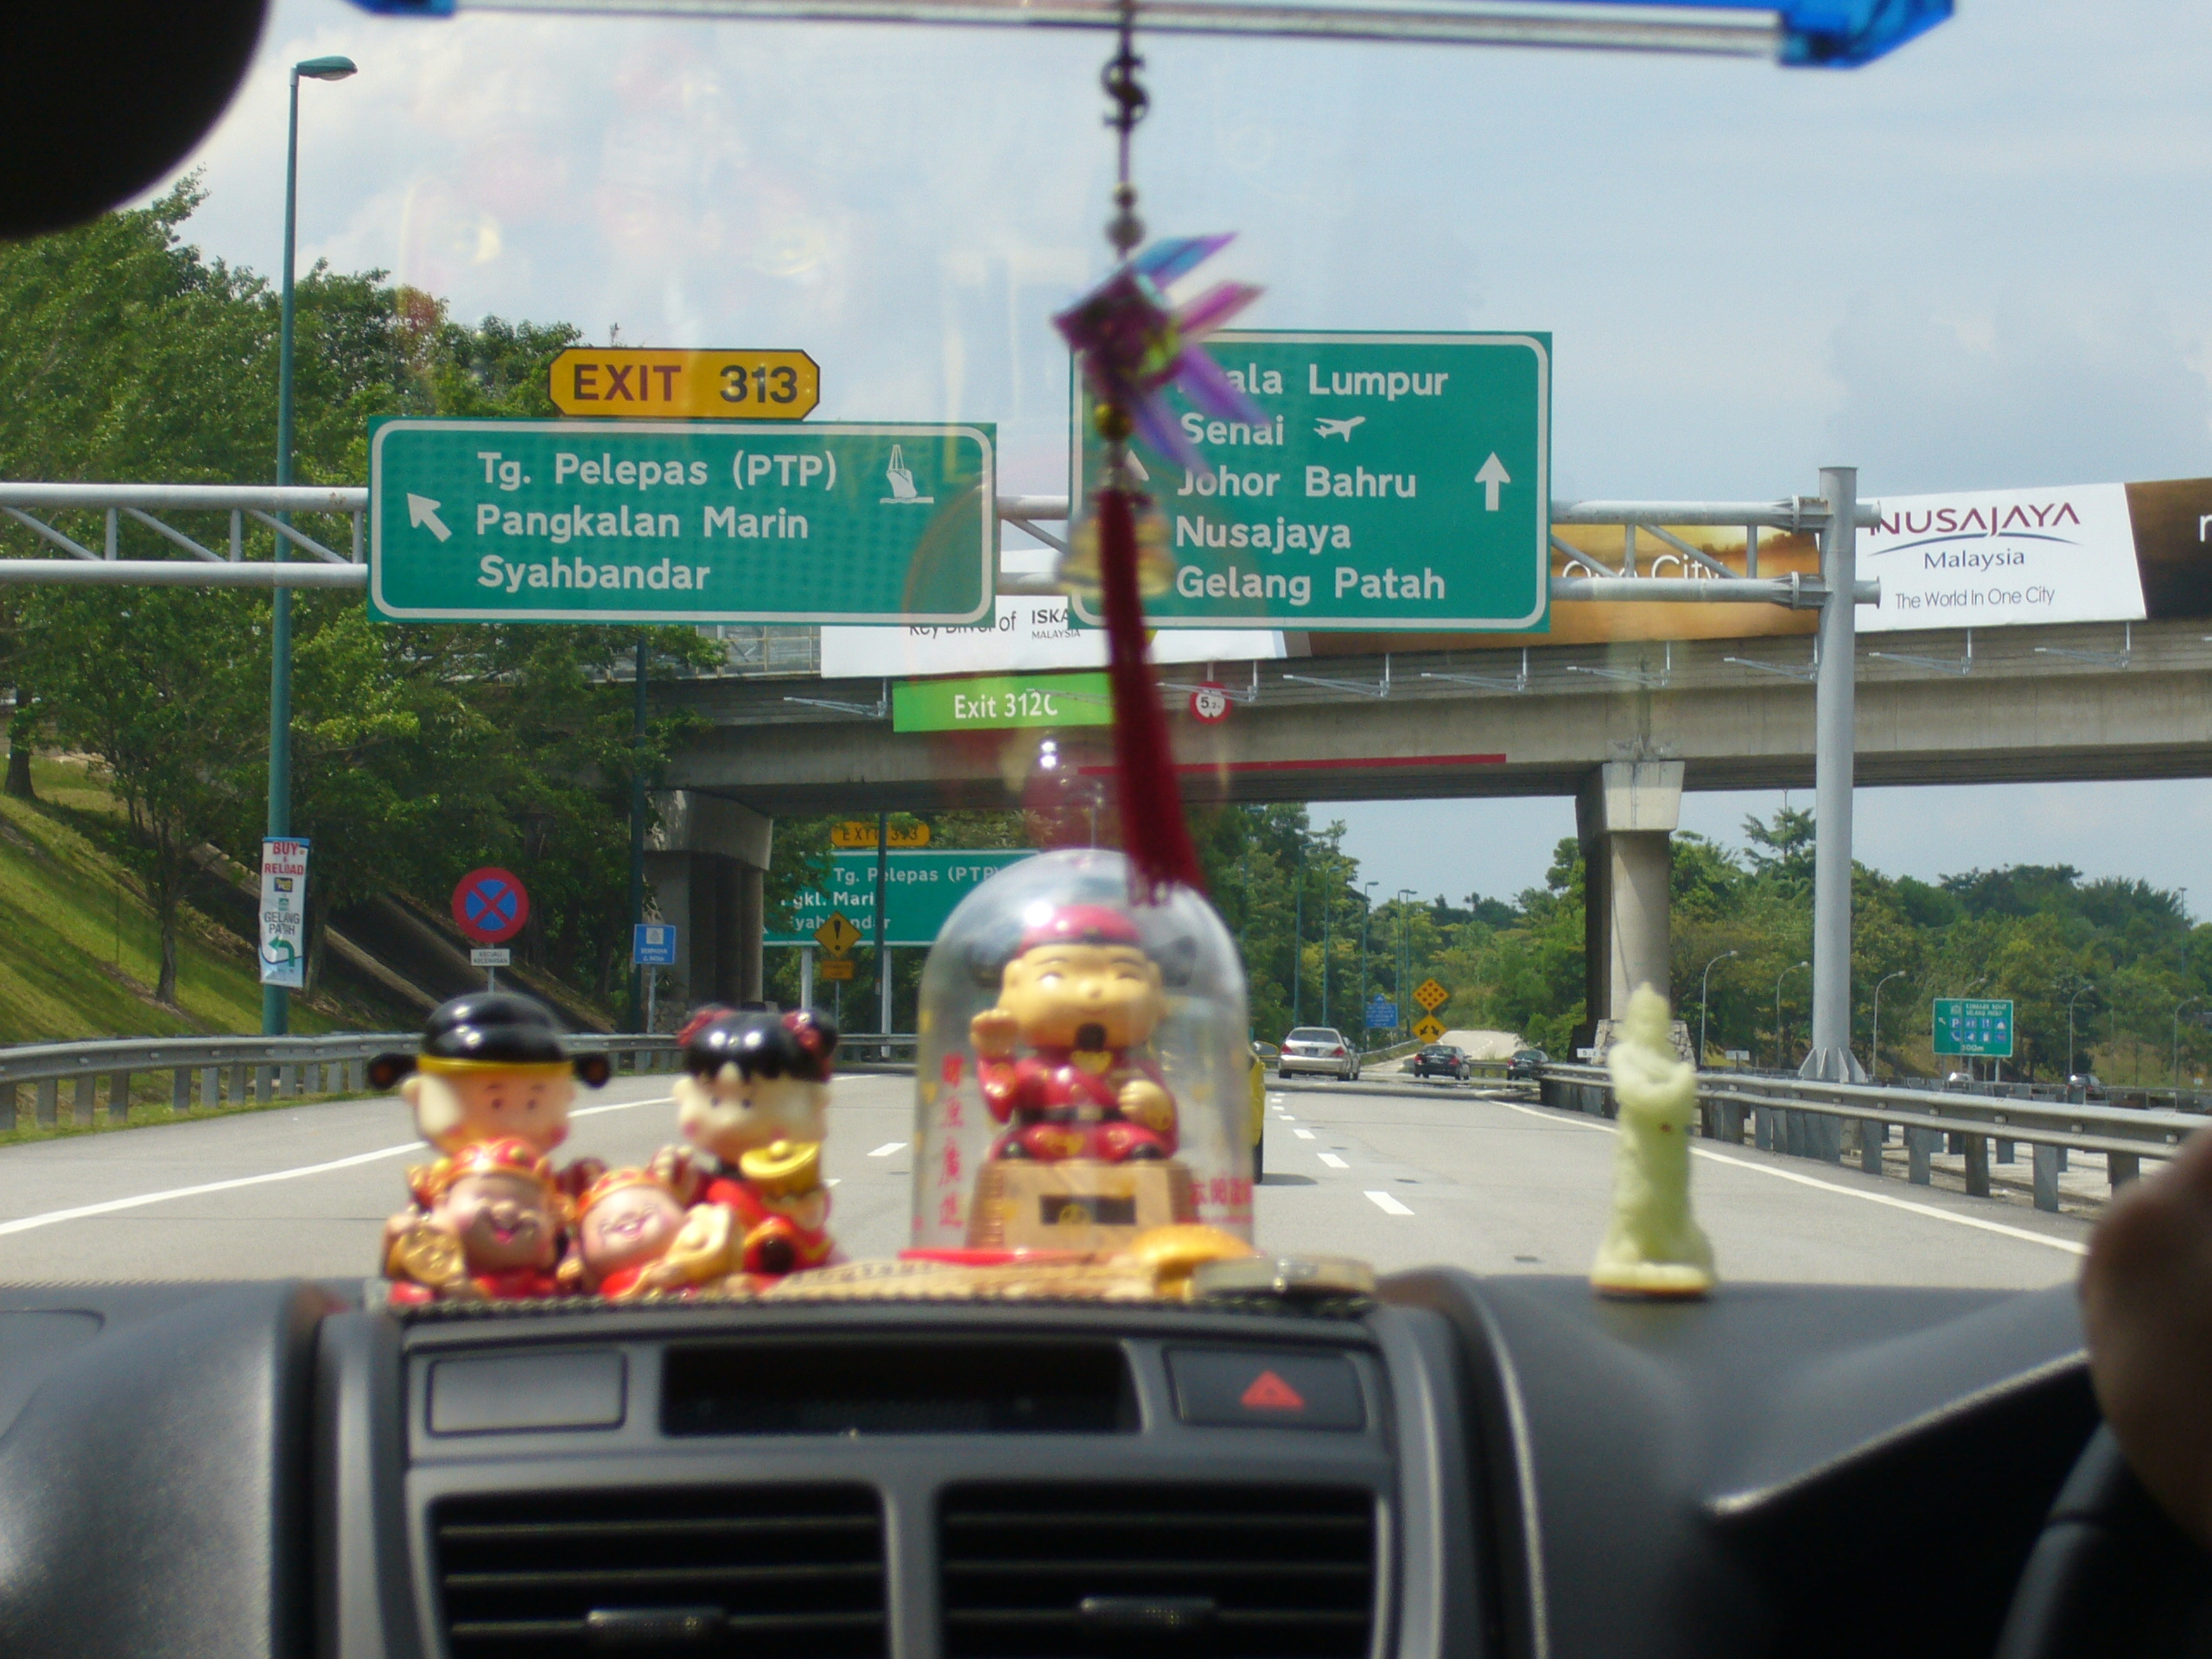 Passed TUAS CHECKPOINT.